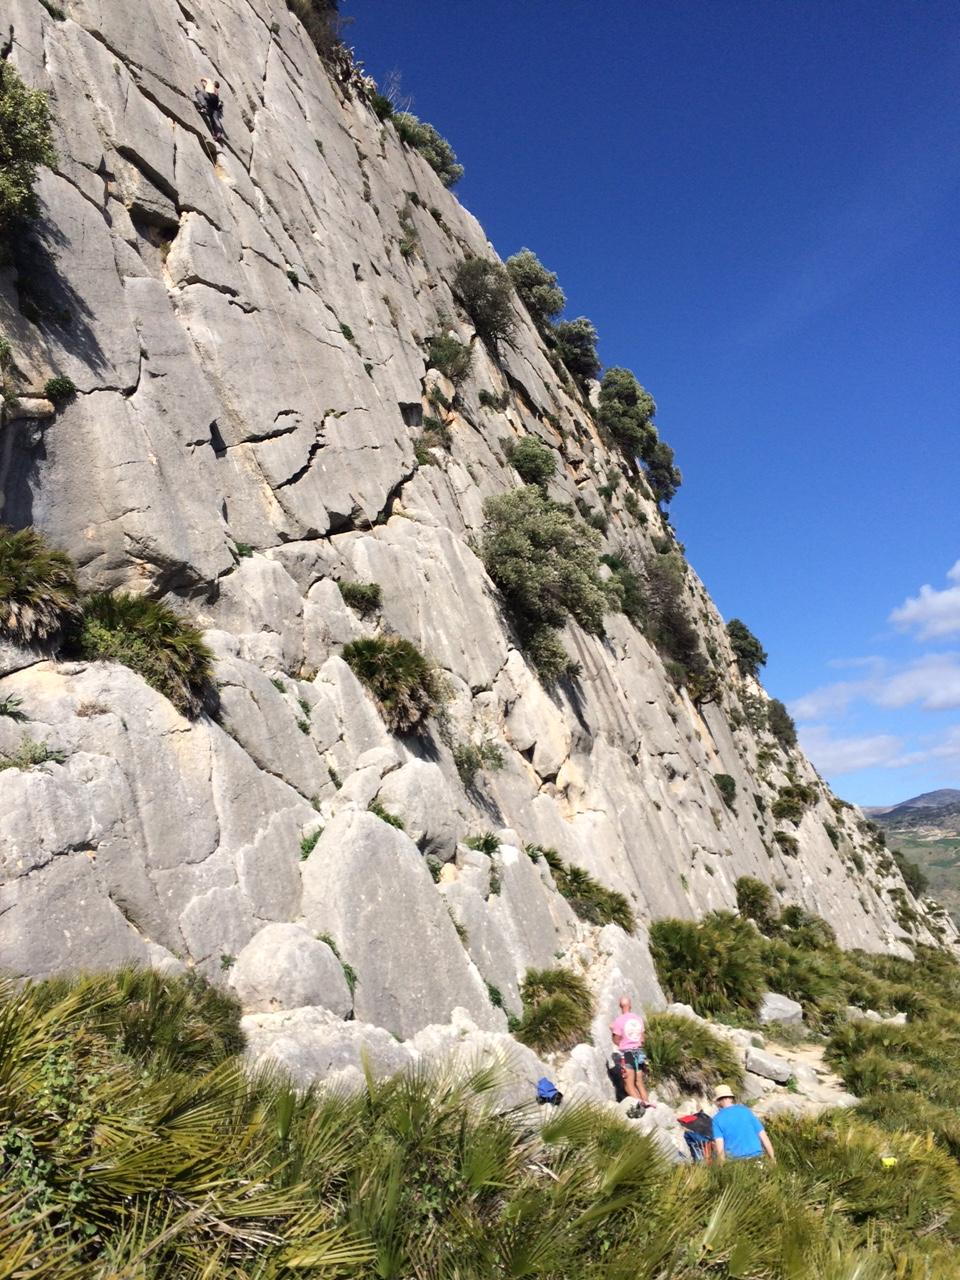 Sports climbing day or Lead climbing preperation day.